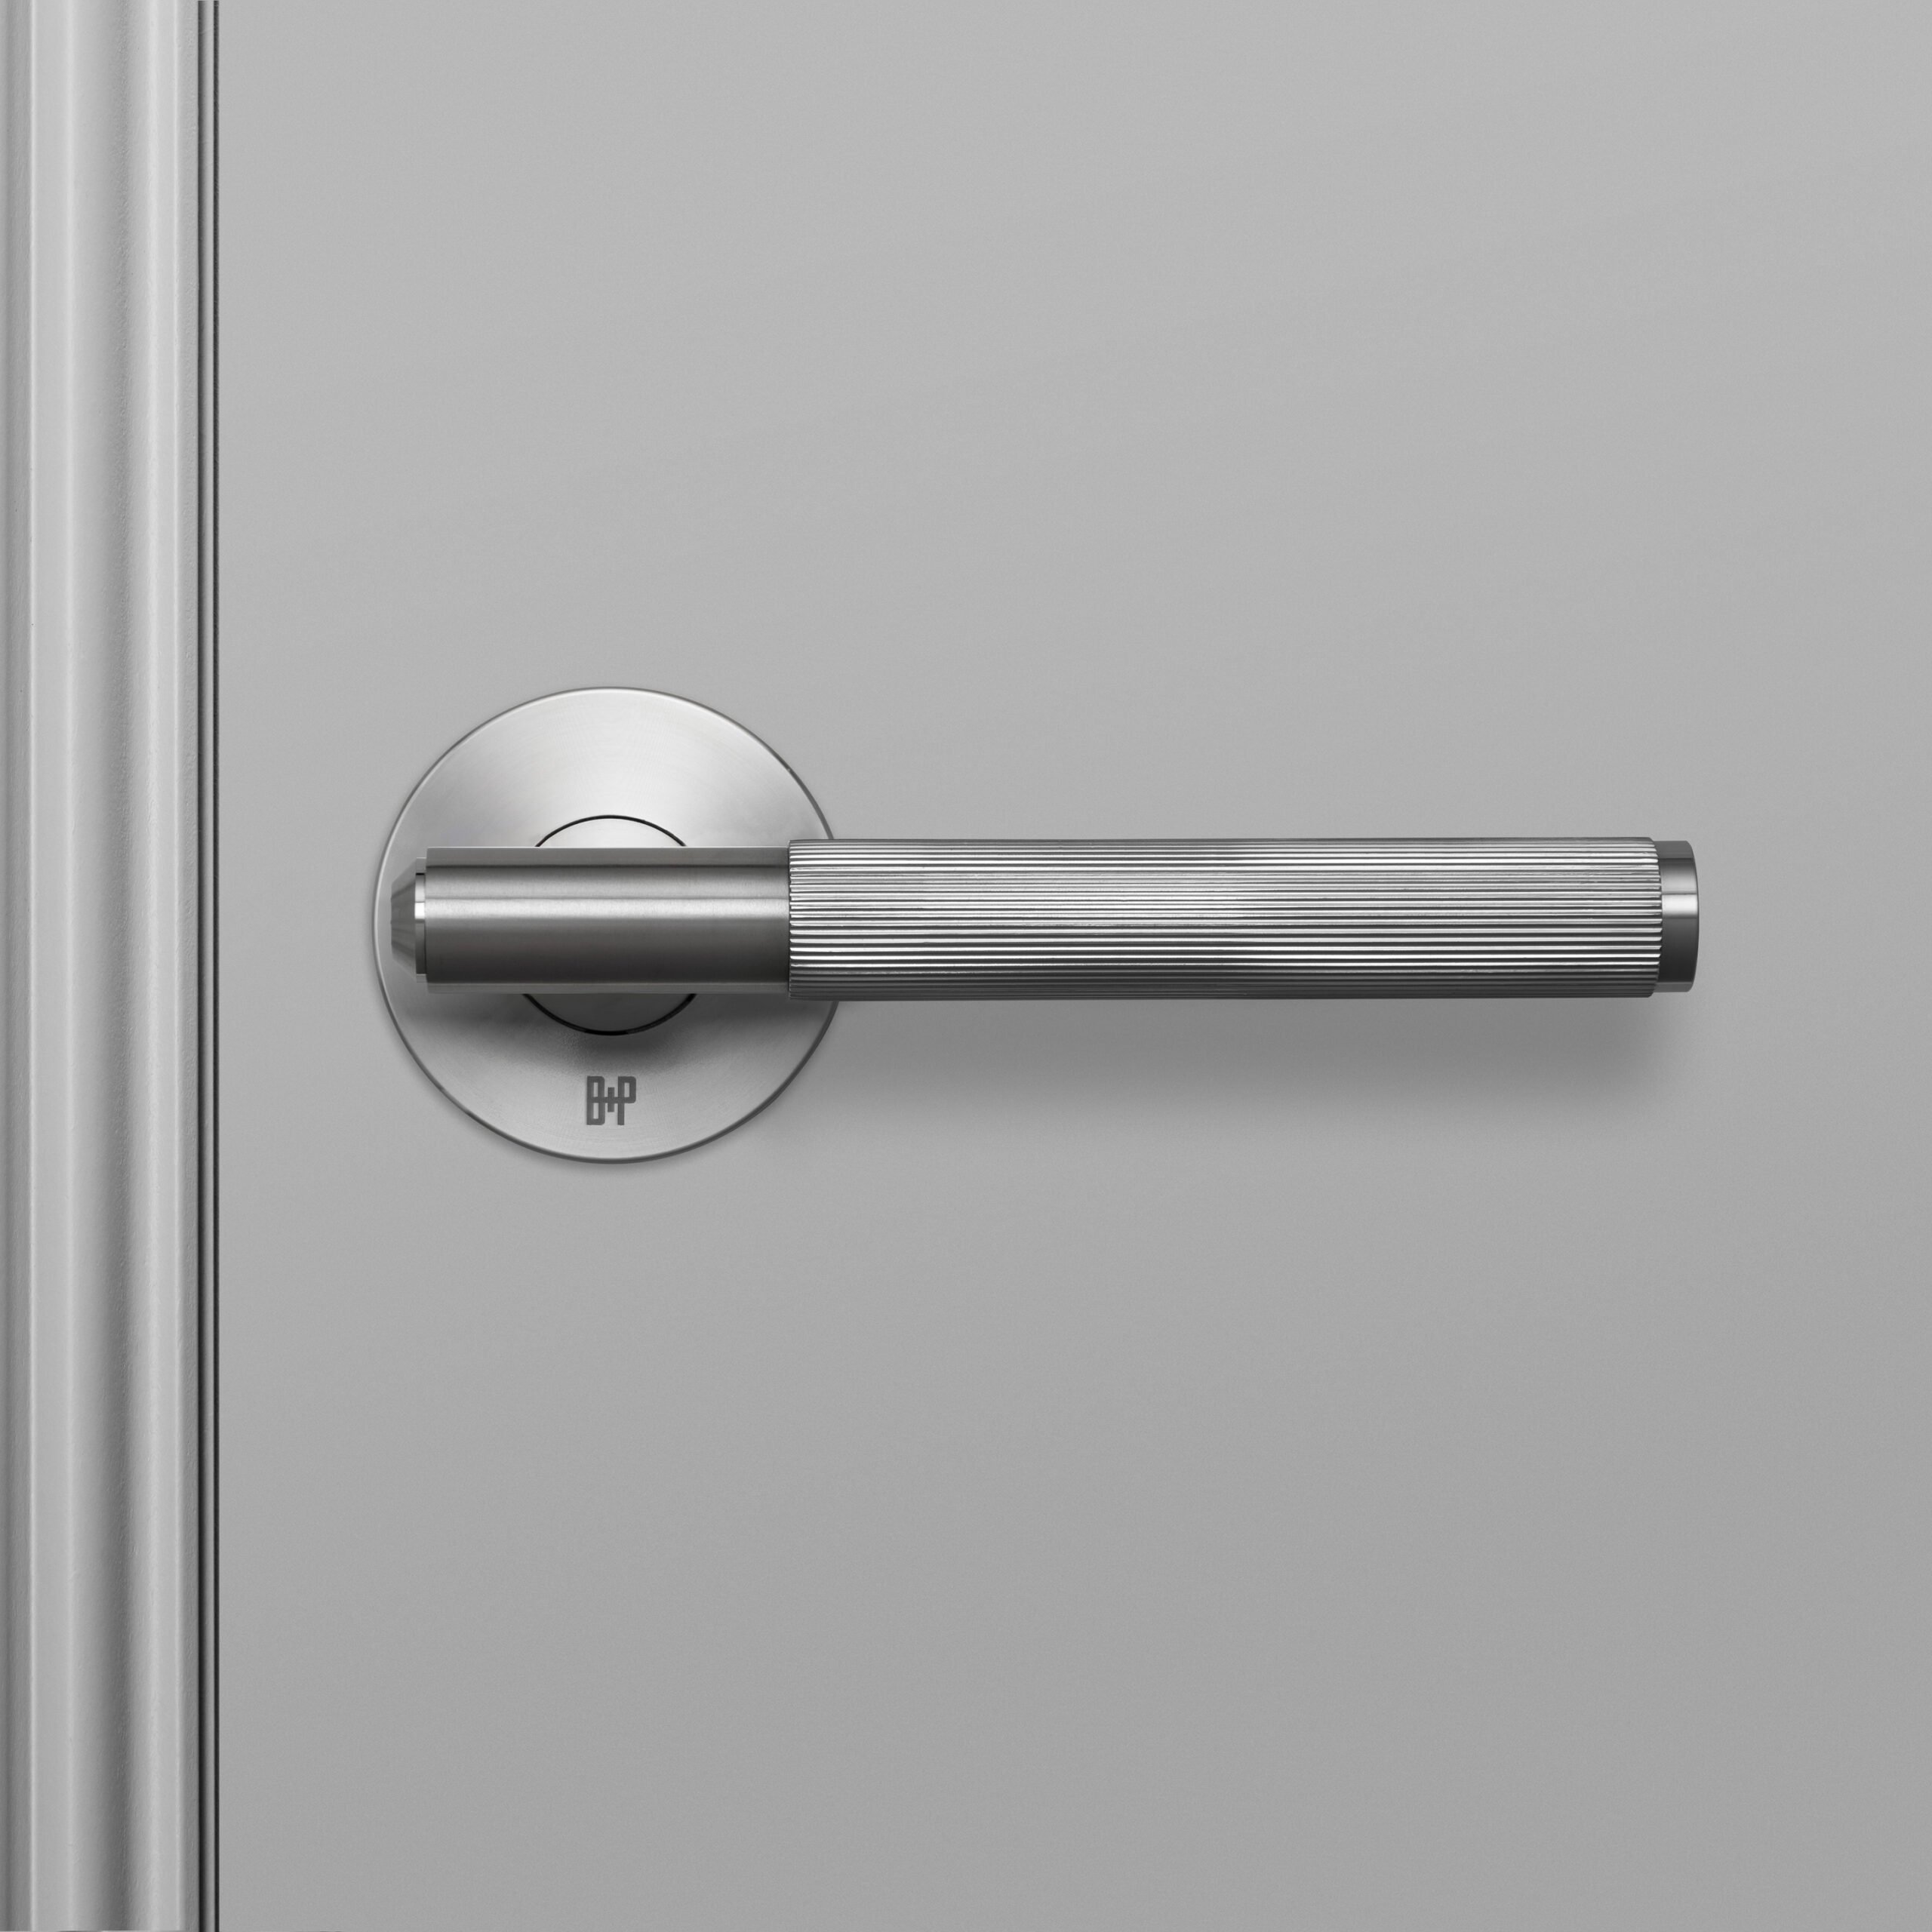 Door-handle_Fixed_Linear_Steel_A2_Web_Square